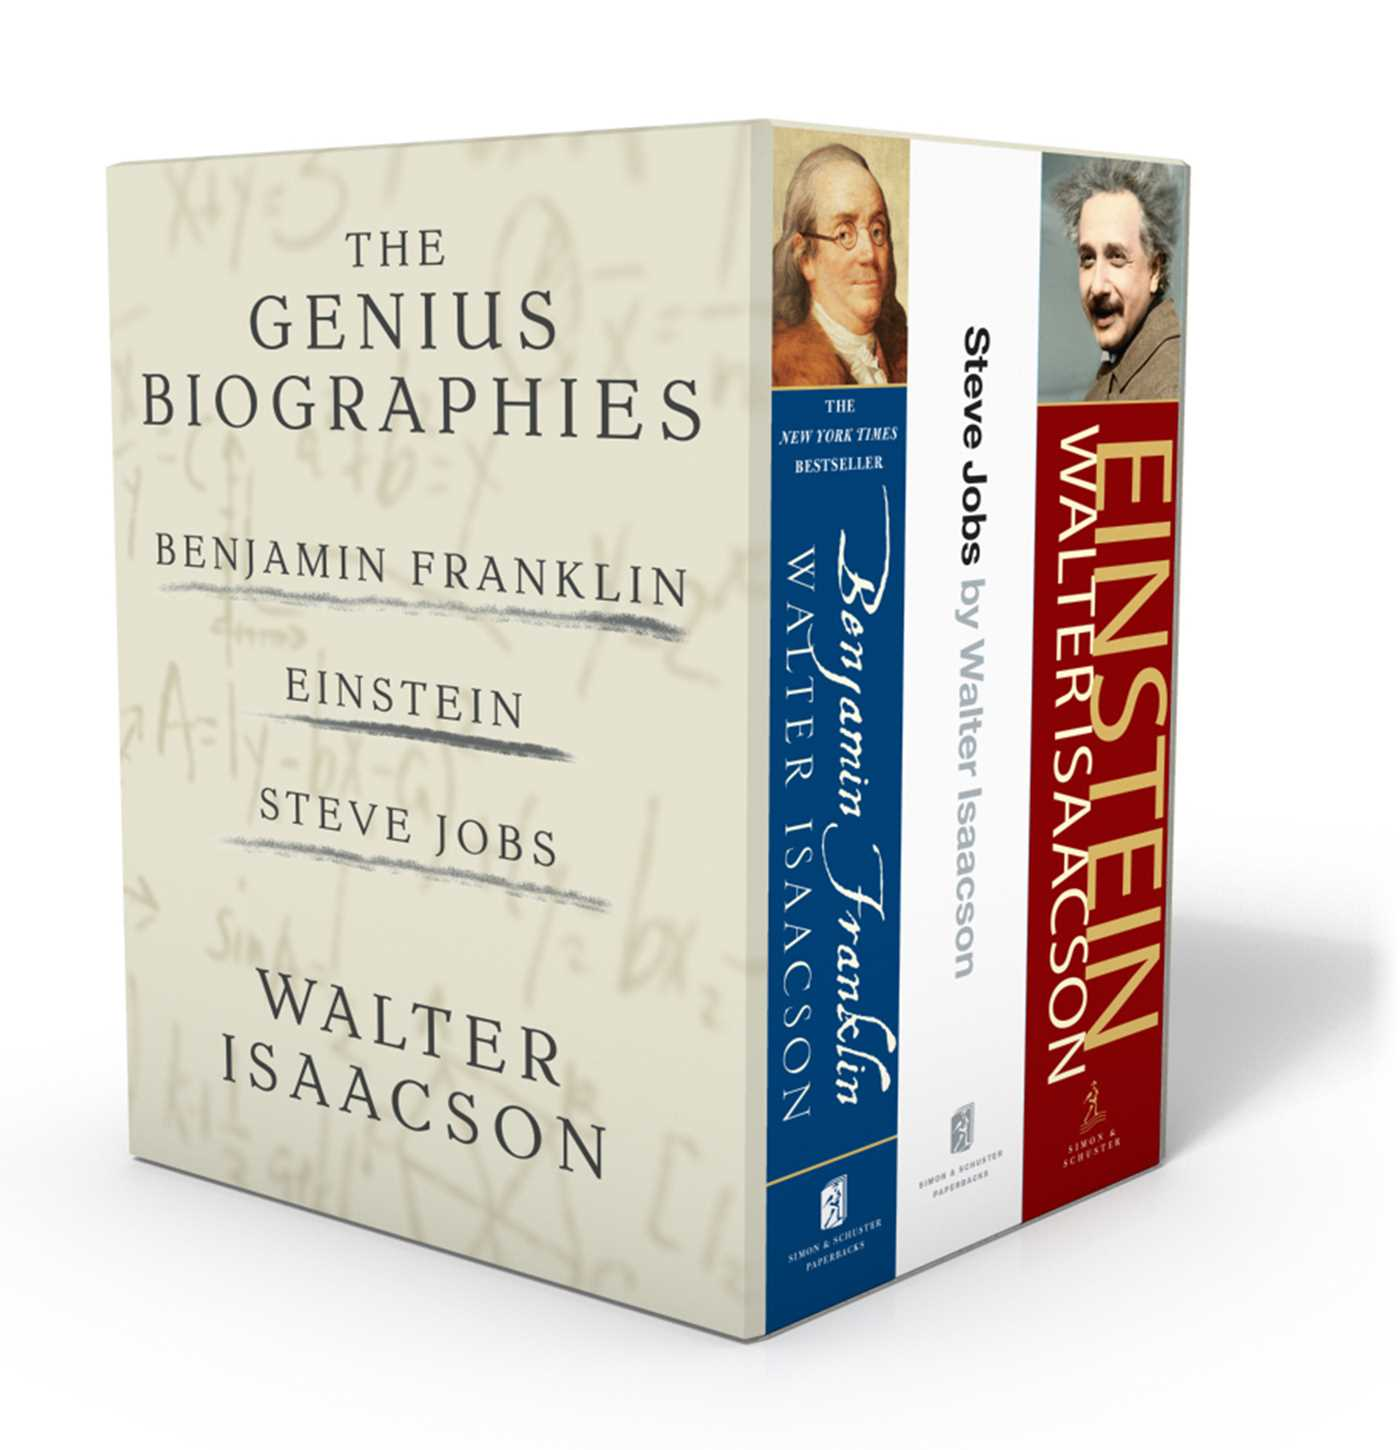 Walter isaacson the genius biographies 9781501189012 hr